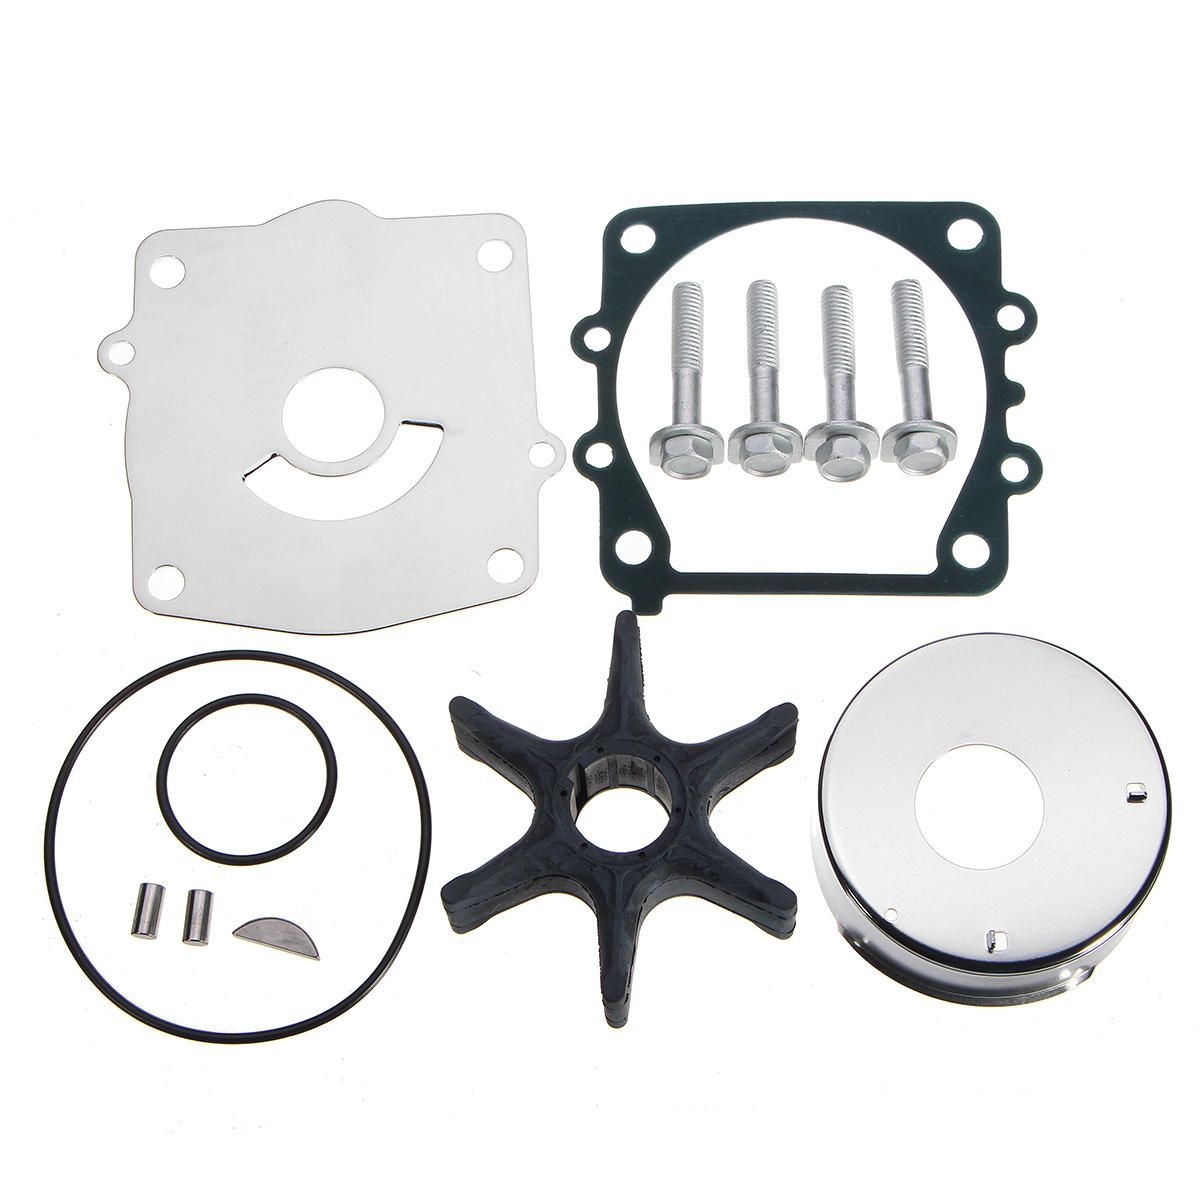 Us 49 80 Marine Boat Outboard Water Pump Impeller Repair Kit For Yamaha 61a W0078 A3 00 Marine Boat Outboard Water Pump Impeller Repair Yamaha 61aw00